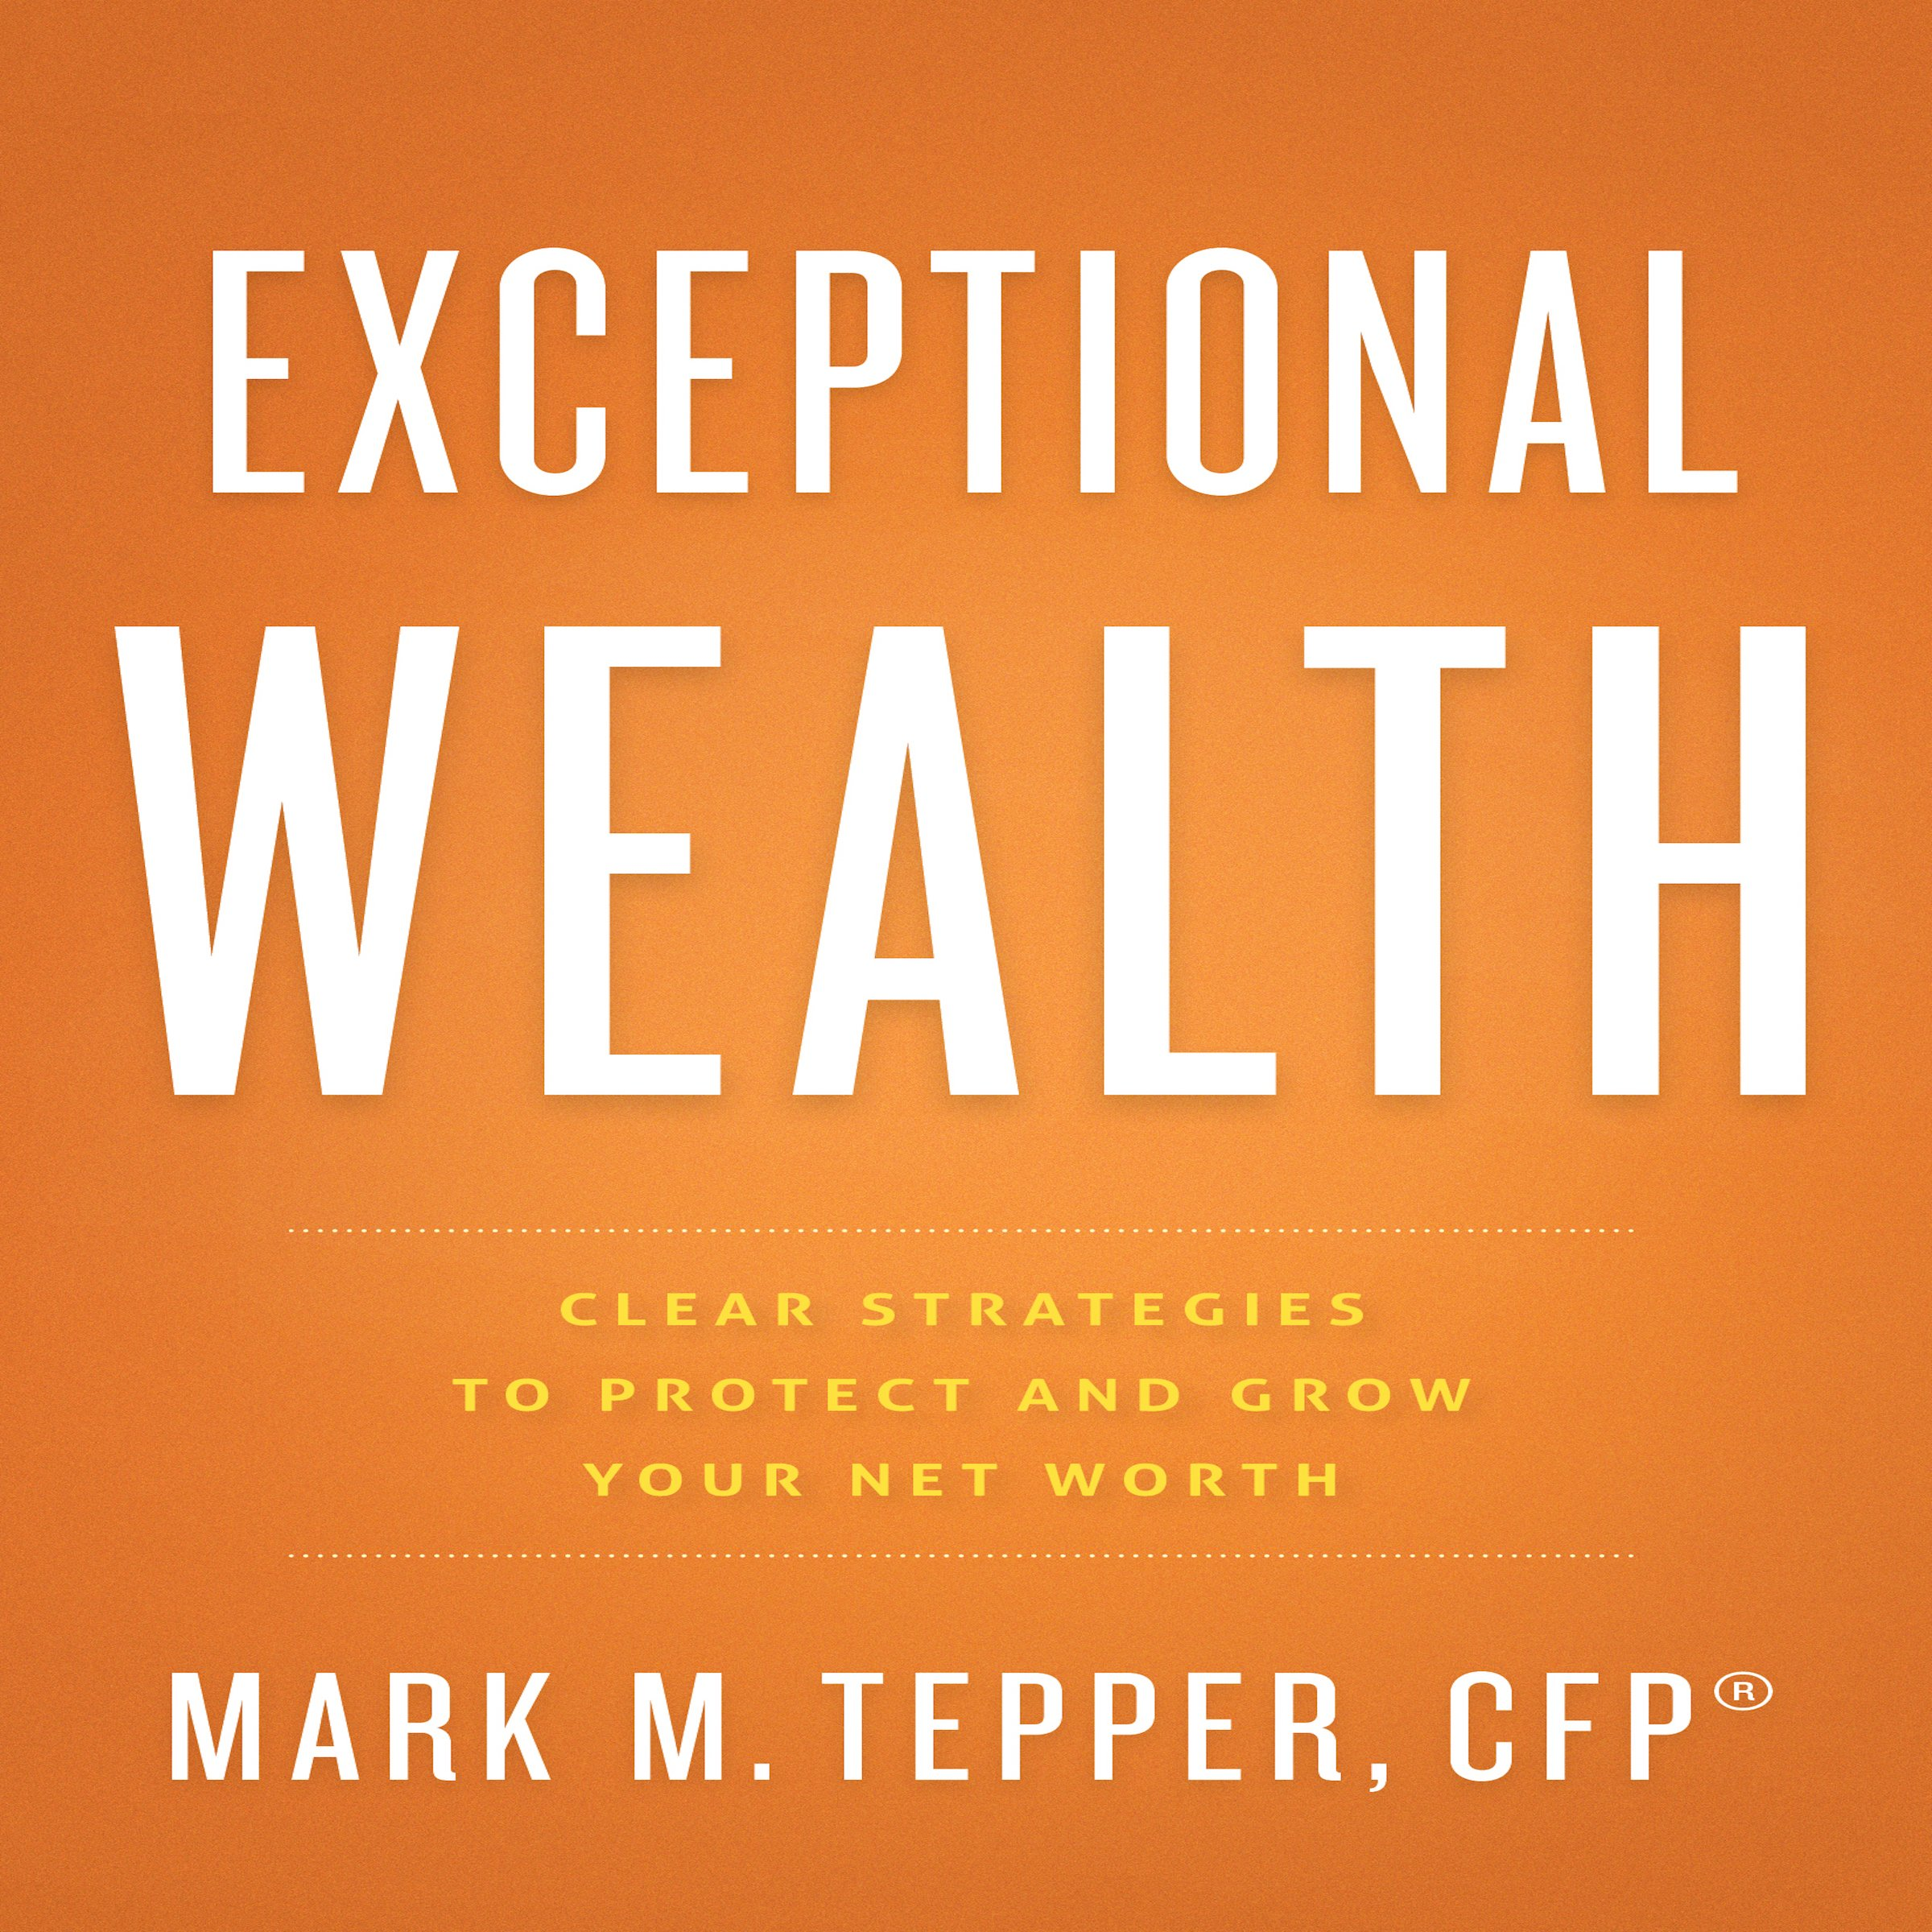 Exceptional Wealth: Clear Strategies to Protect and Grow Your Net Worth